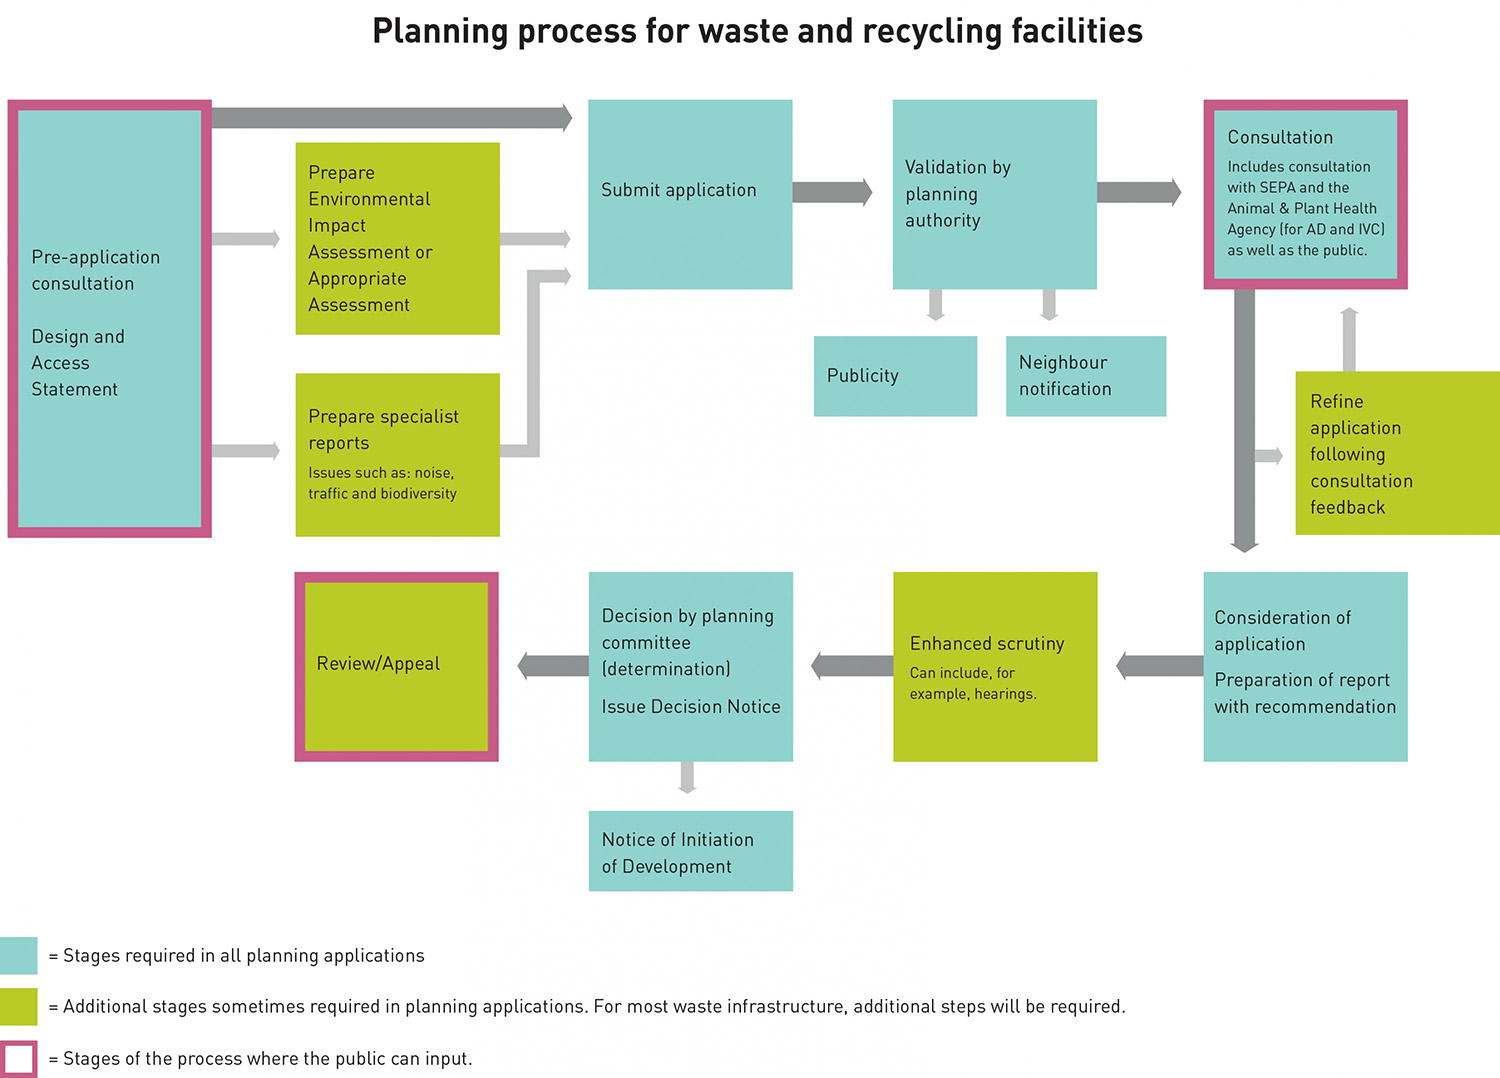 waste management plans template - process for creating waste and recycling facilities zero